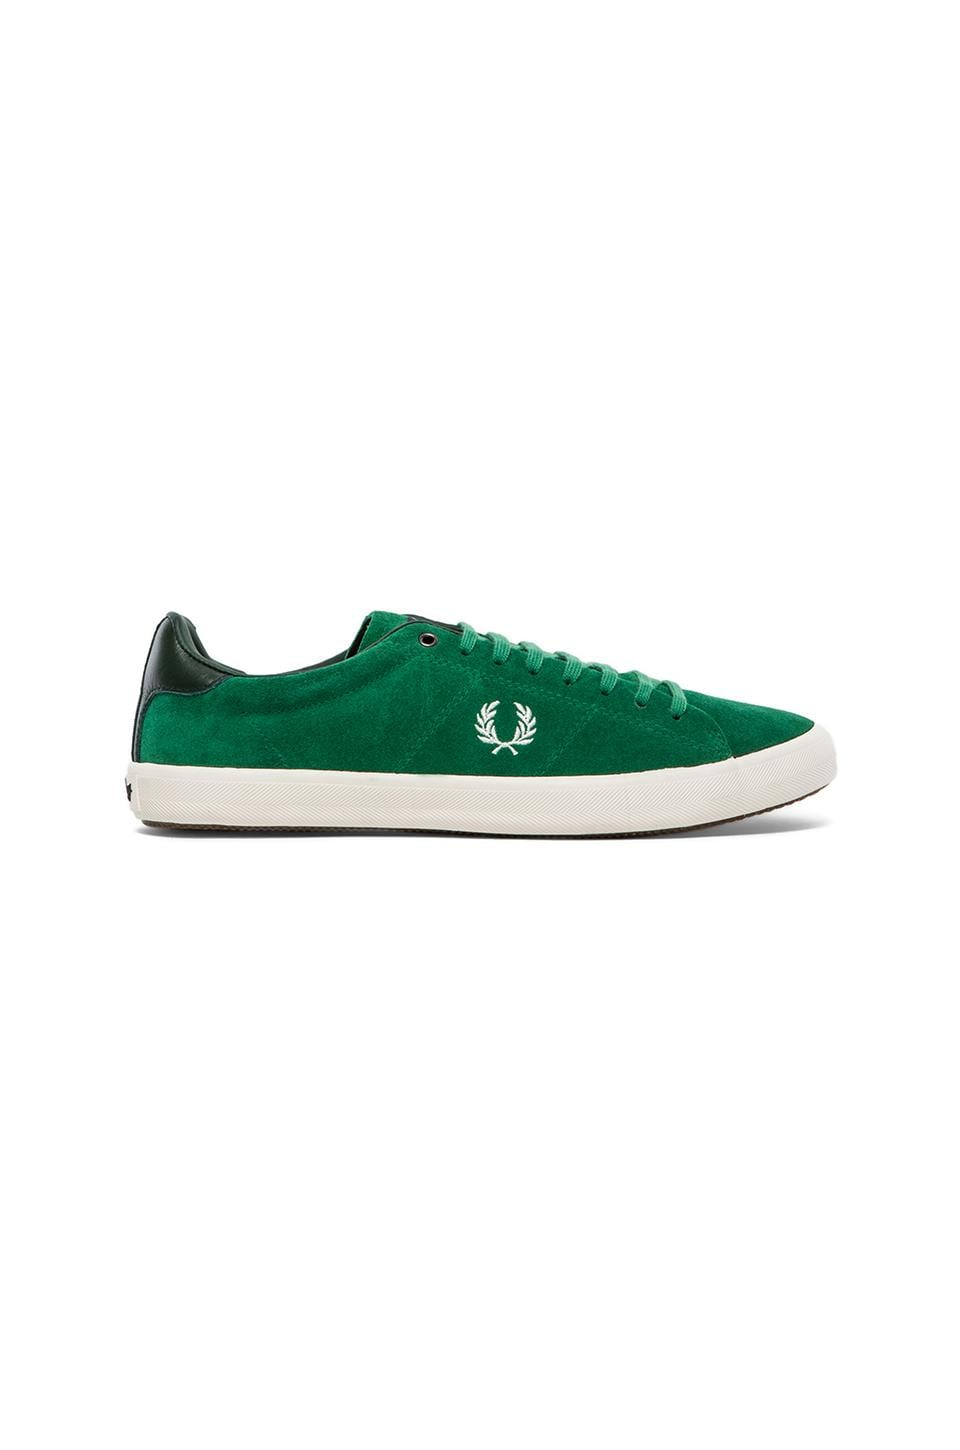 Fred Perry Howells Unlined Suede Sneaker in Privet & Porcelain